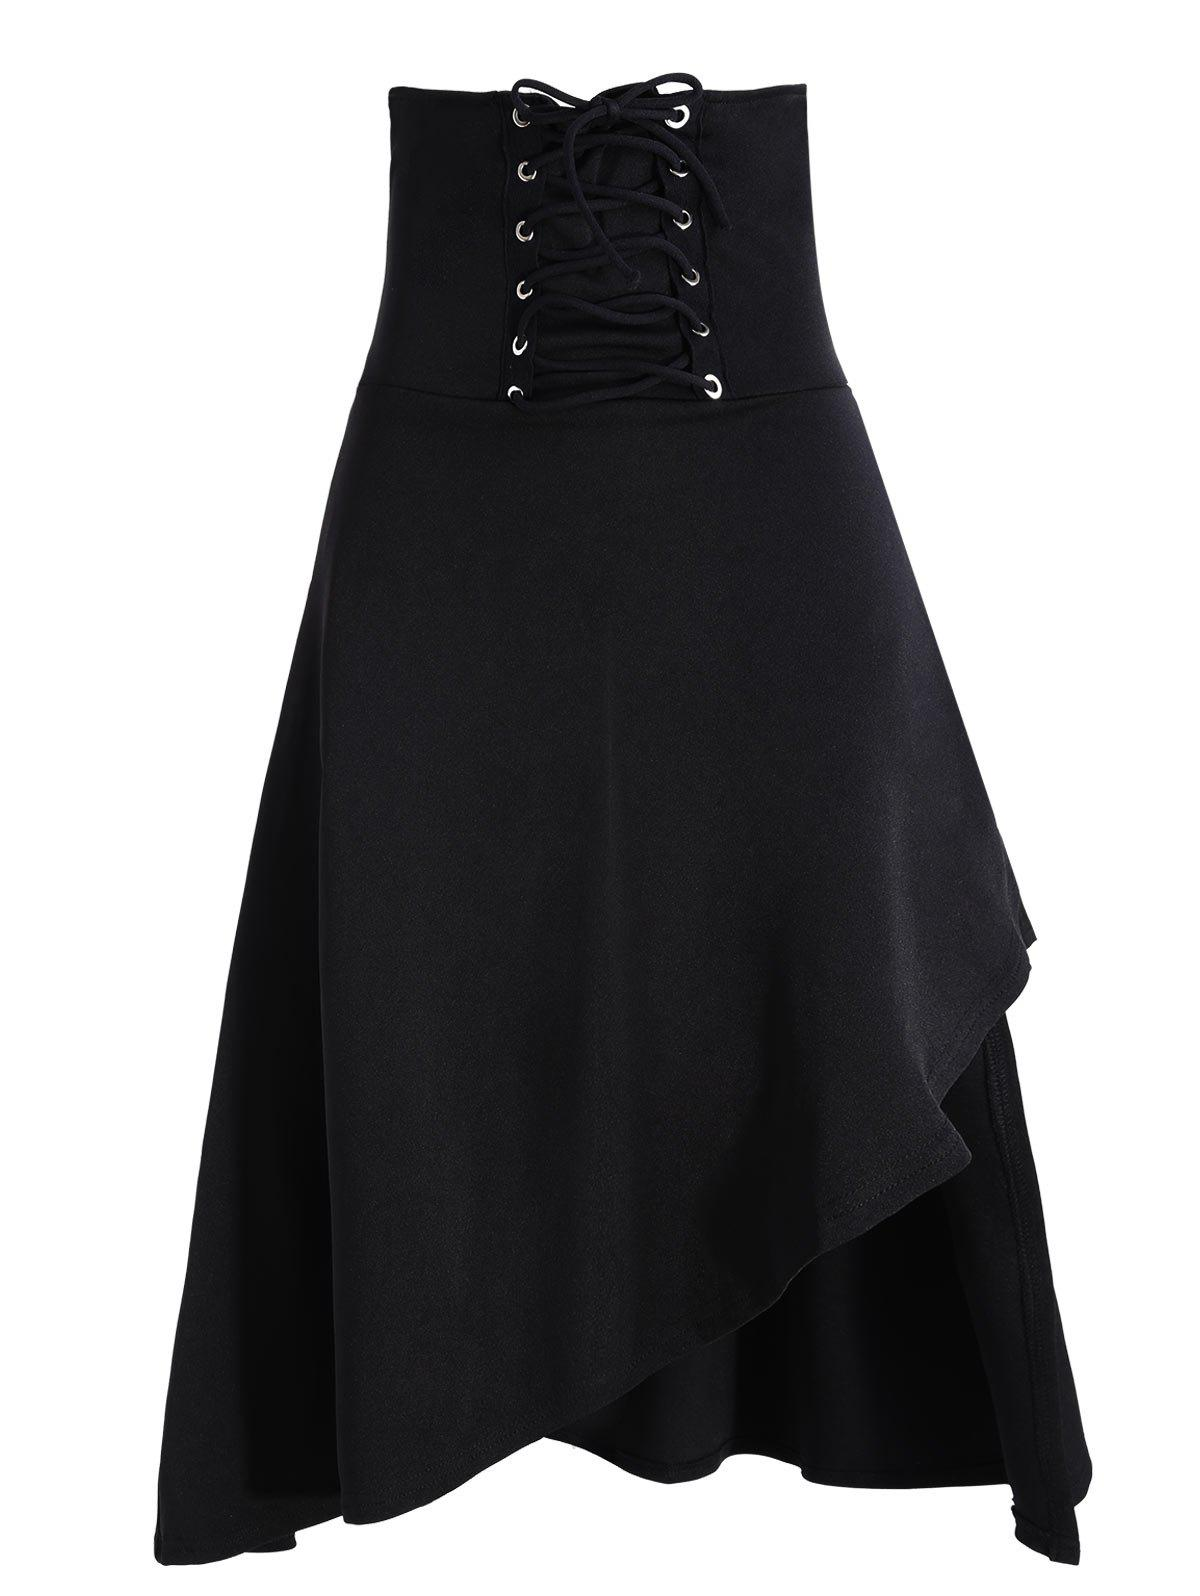 Cheap Asymmetric Lace Up Gothic Long Skirt